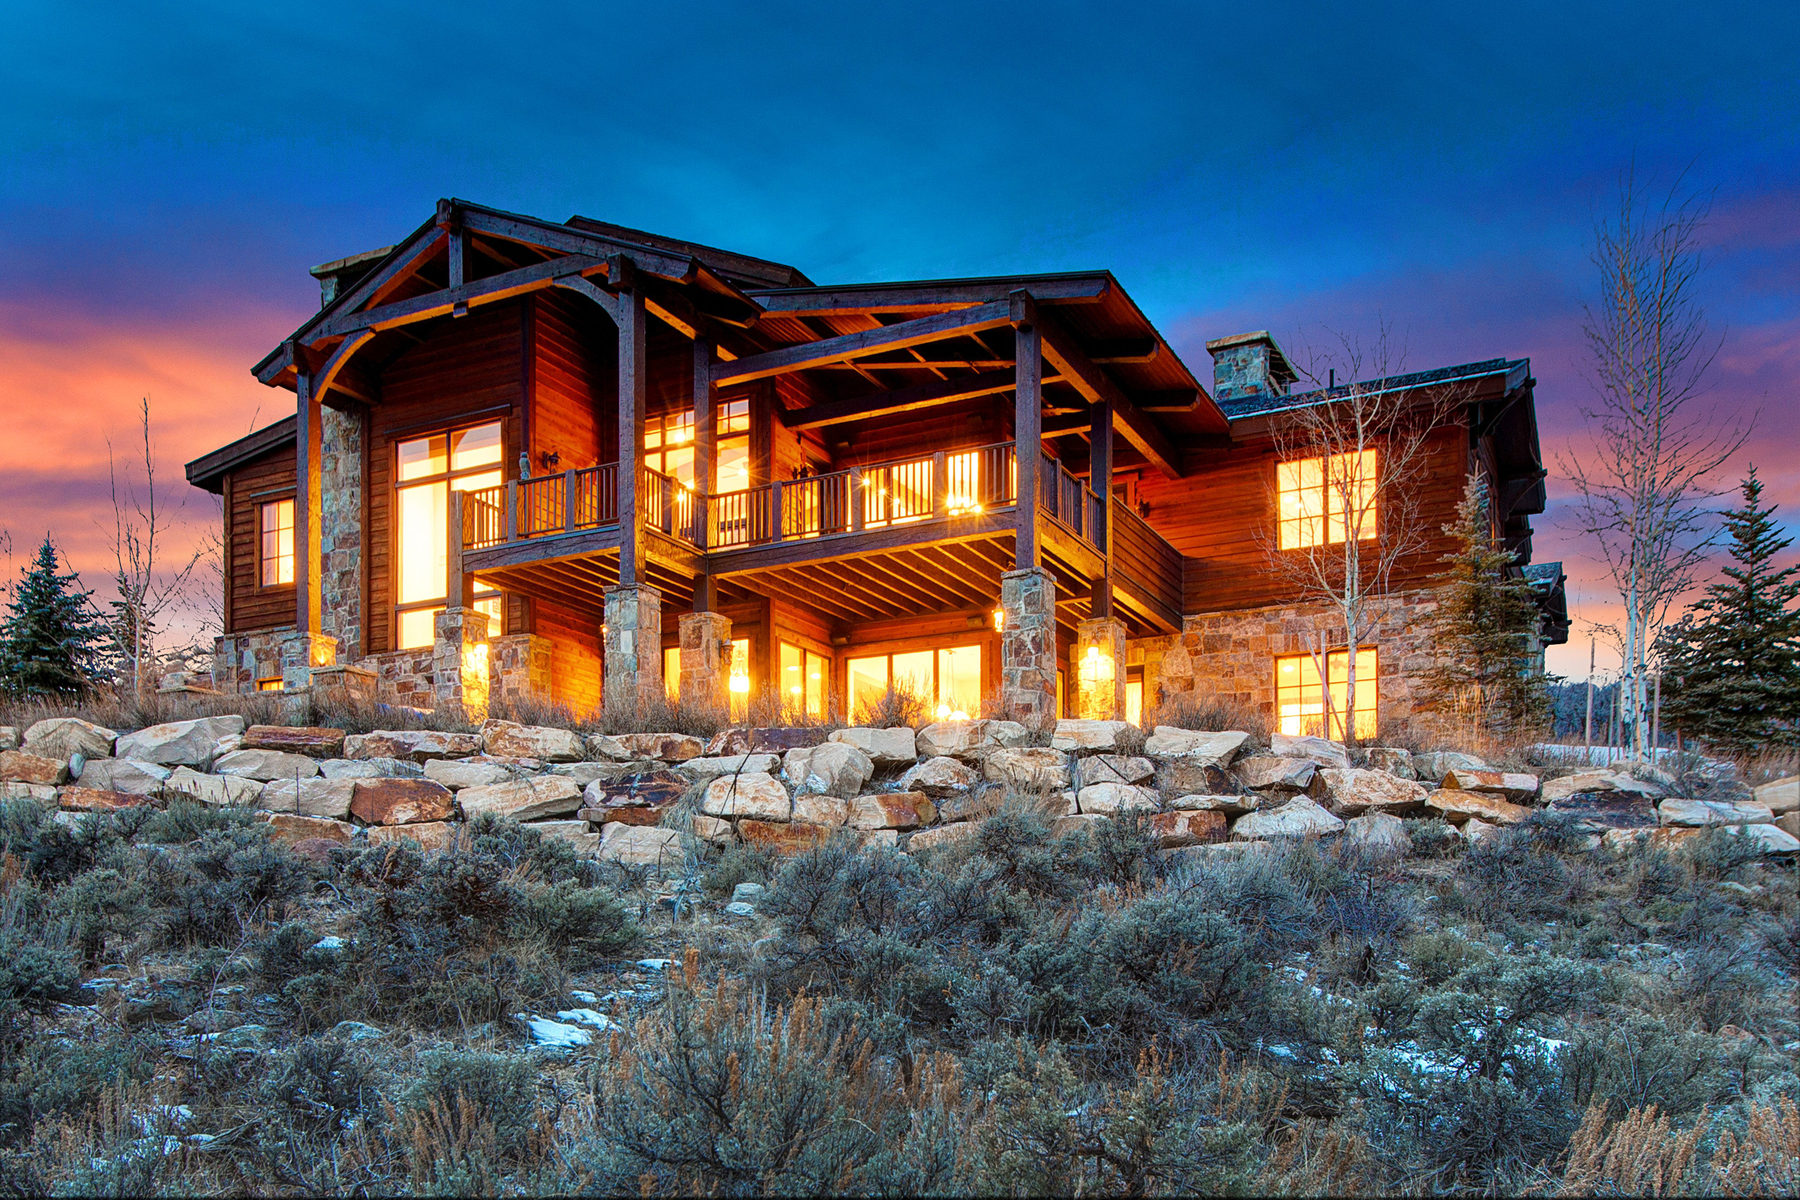 Nhà ở một gia đình vì Bán tại Huge Uinta Mountain views combined with one of the best built homes 7870 Moon Dog Court Lot #85 Park City, Utah 84098 Hoa Kỳ